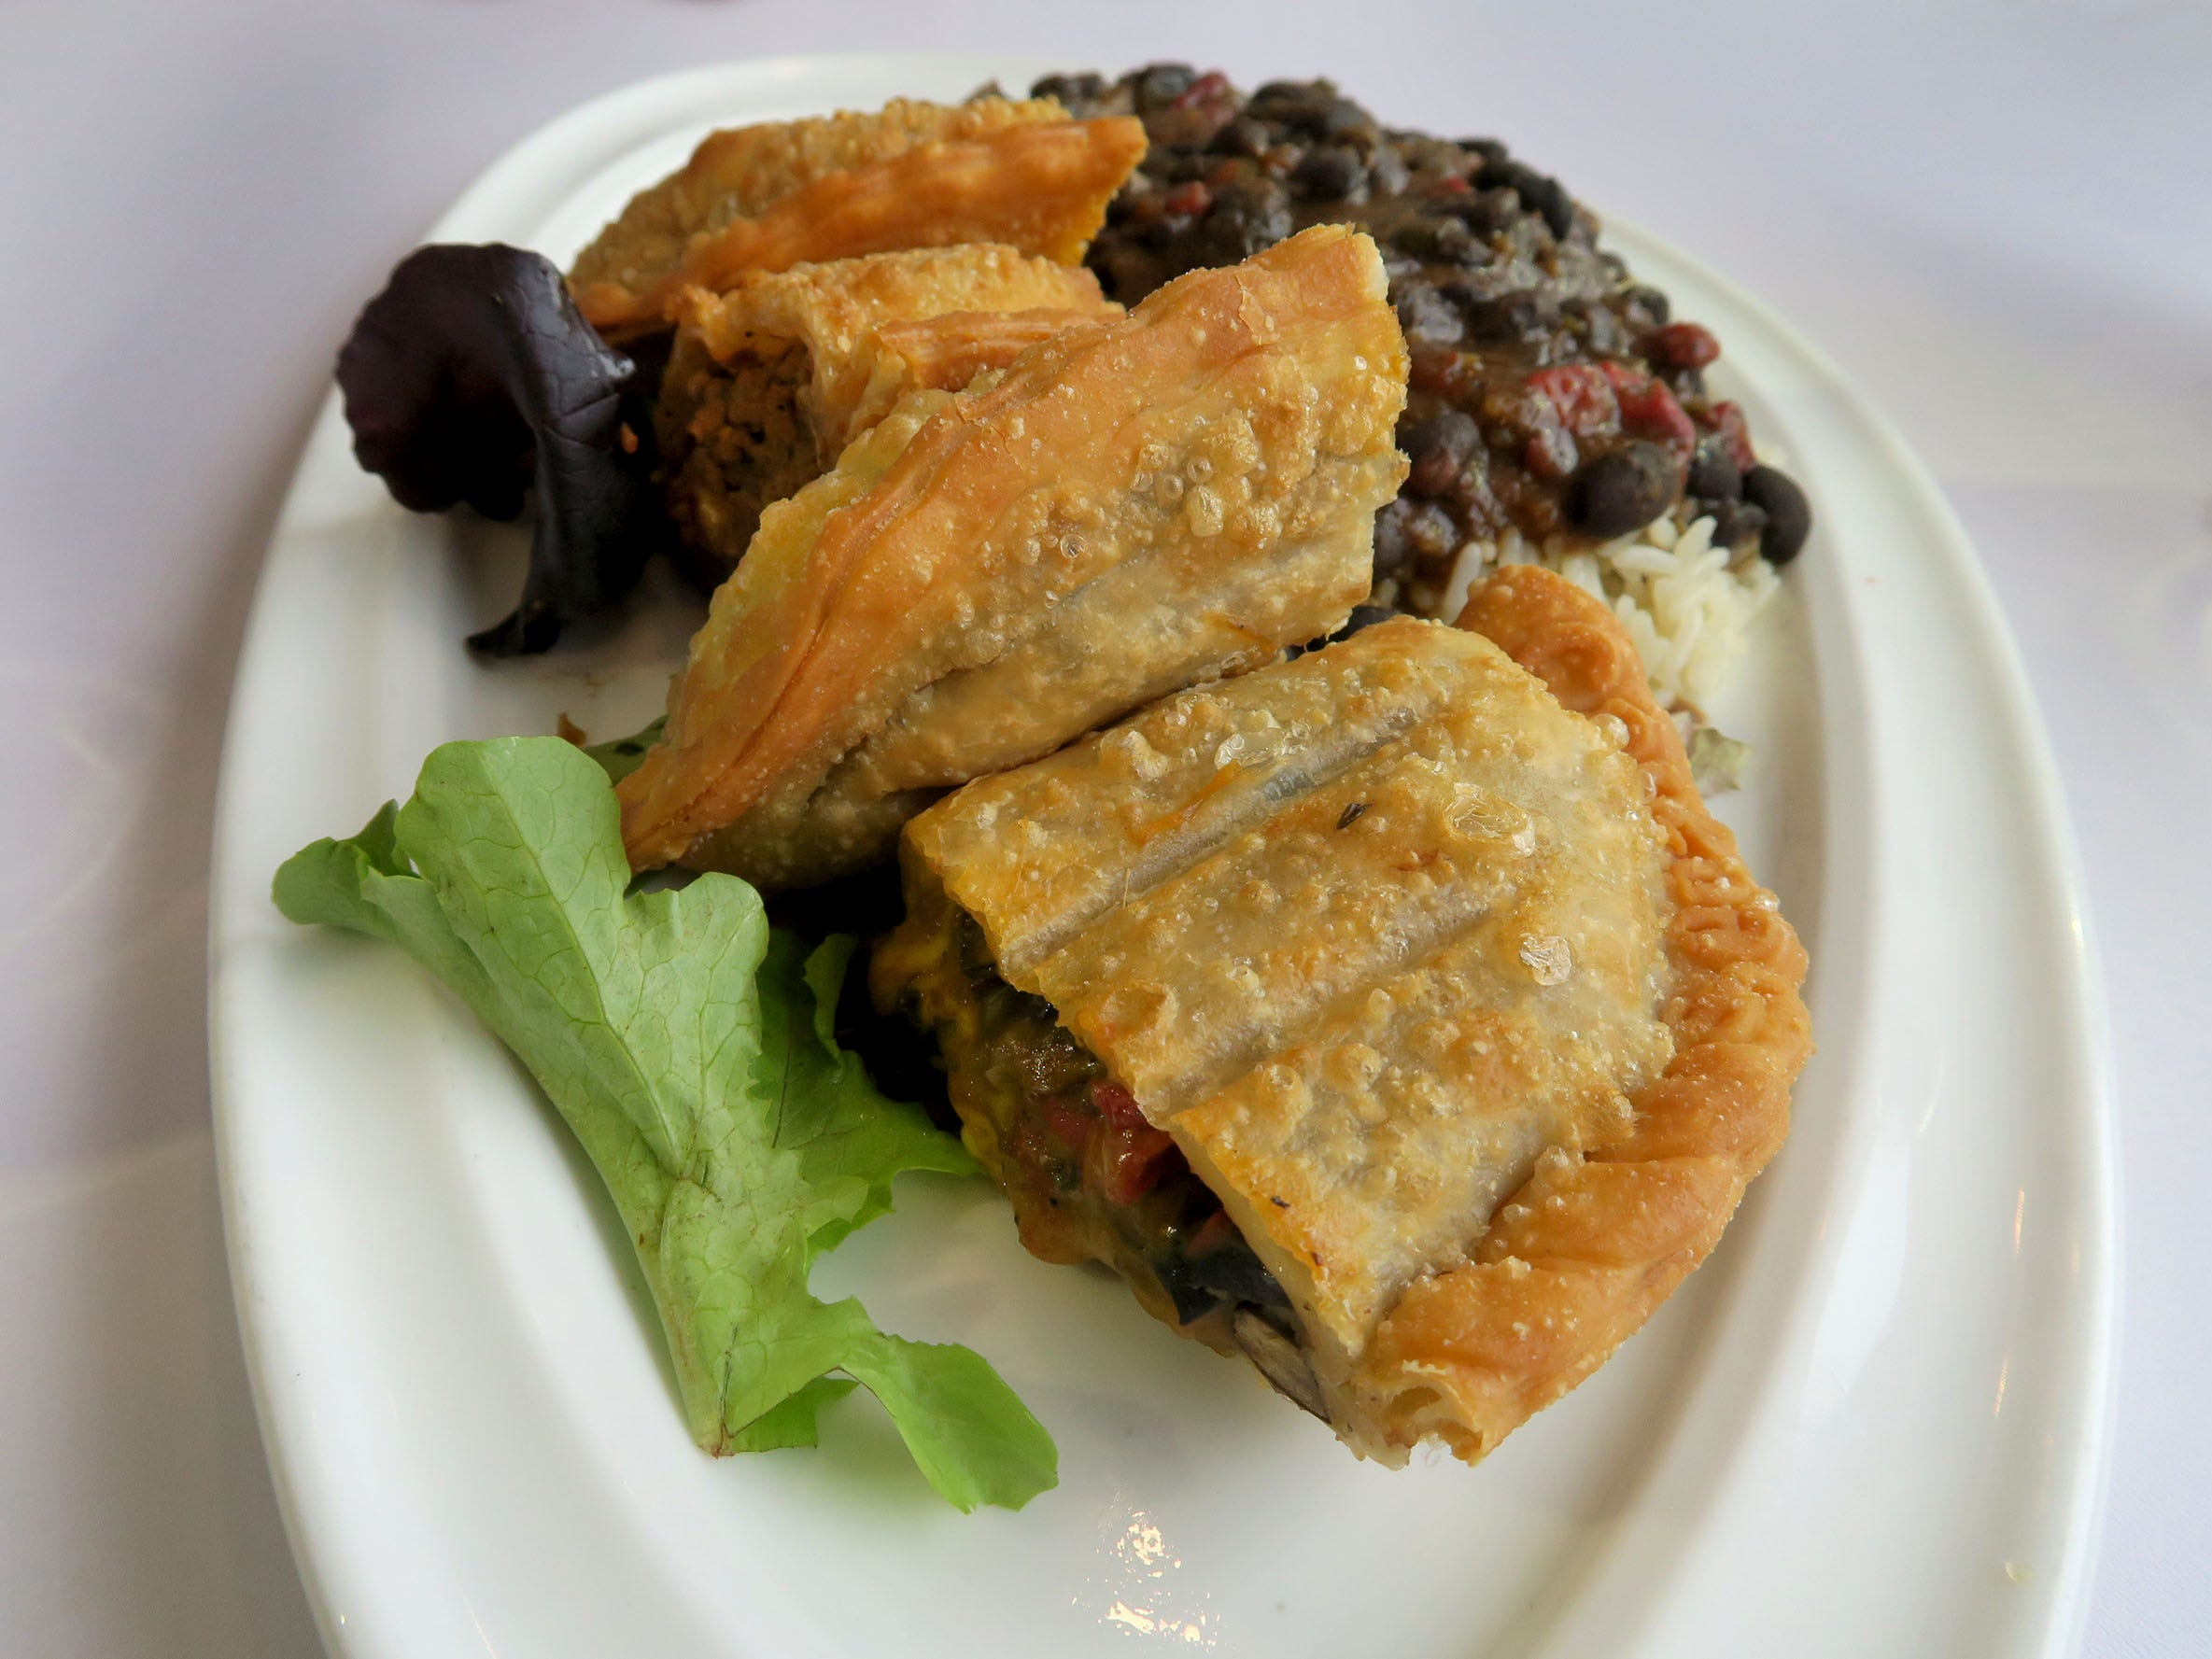 The Empanada Combo served with a side of black beans and white rice at Caneda's White Rooster, a year-old Toms River-based Cuban restaurant on Fischer Boulevard.